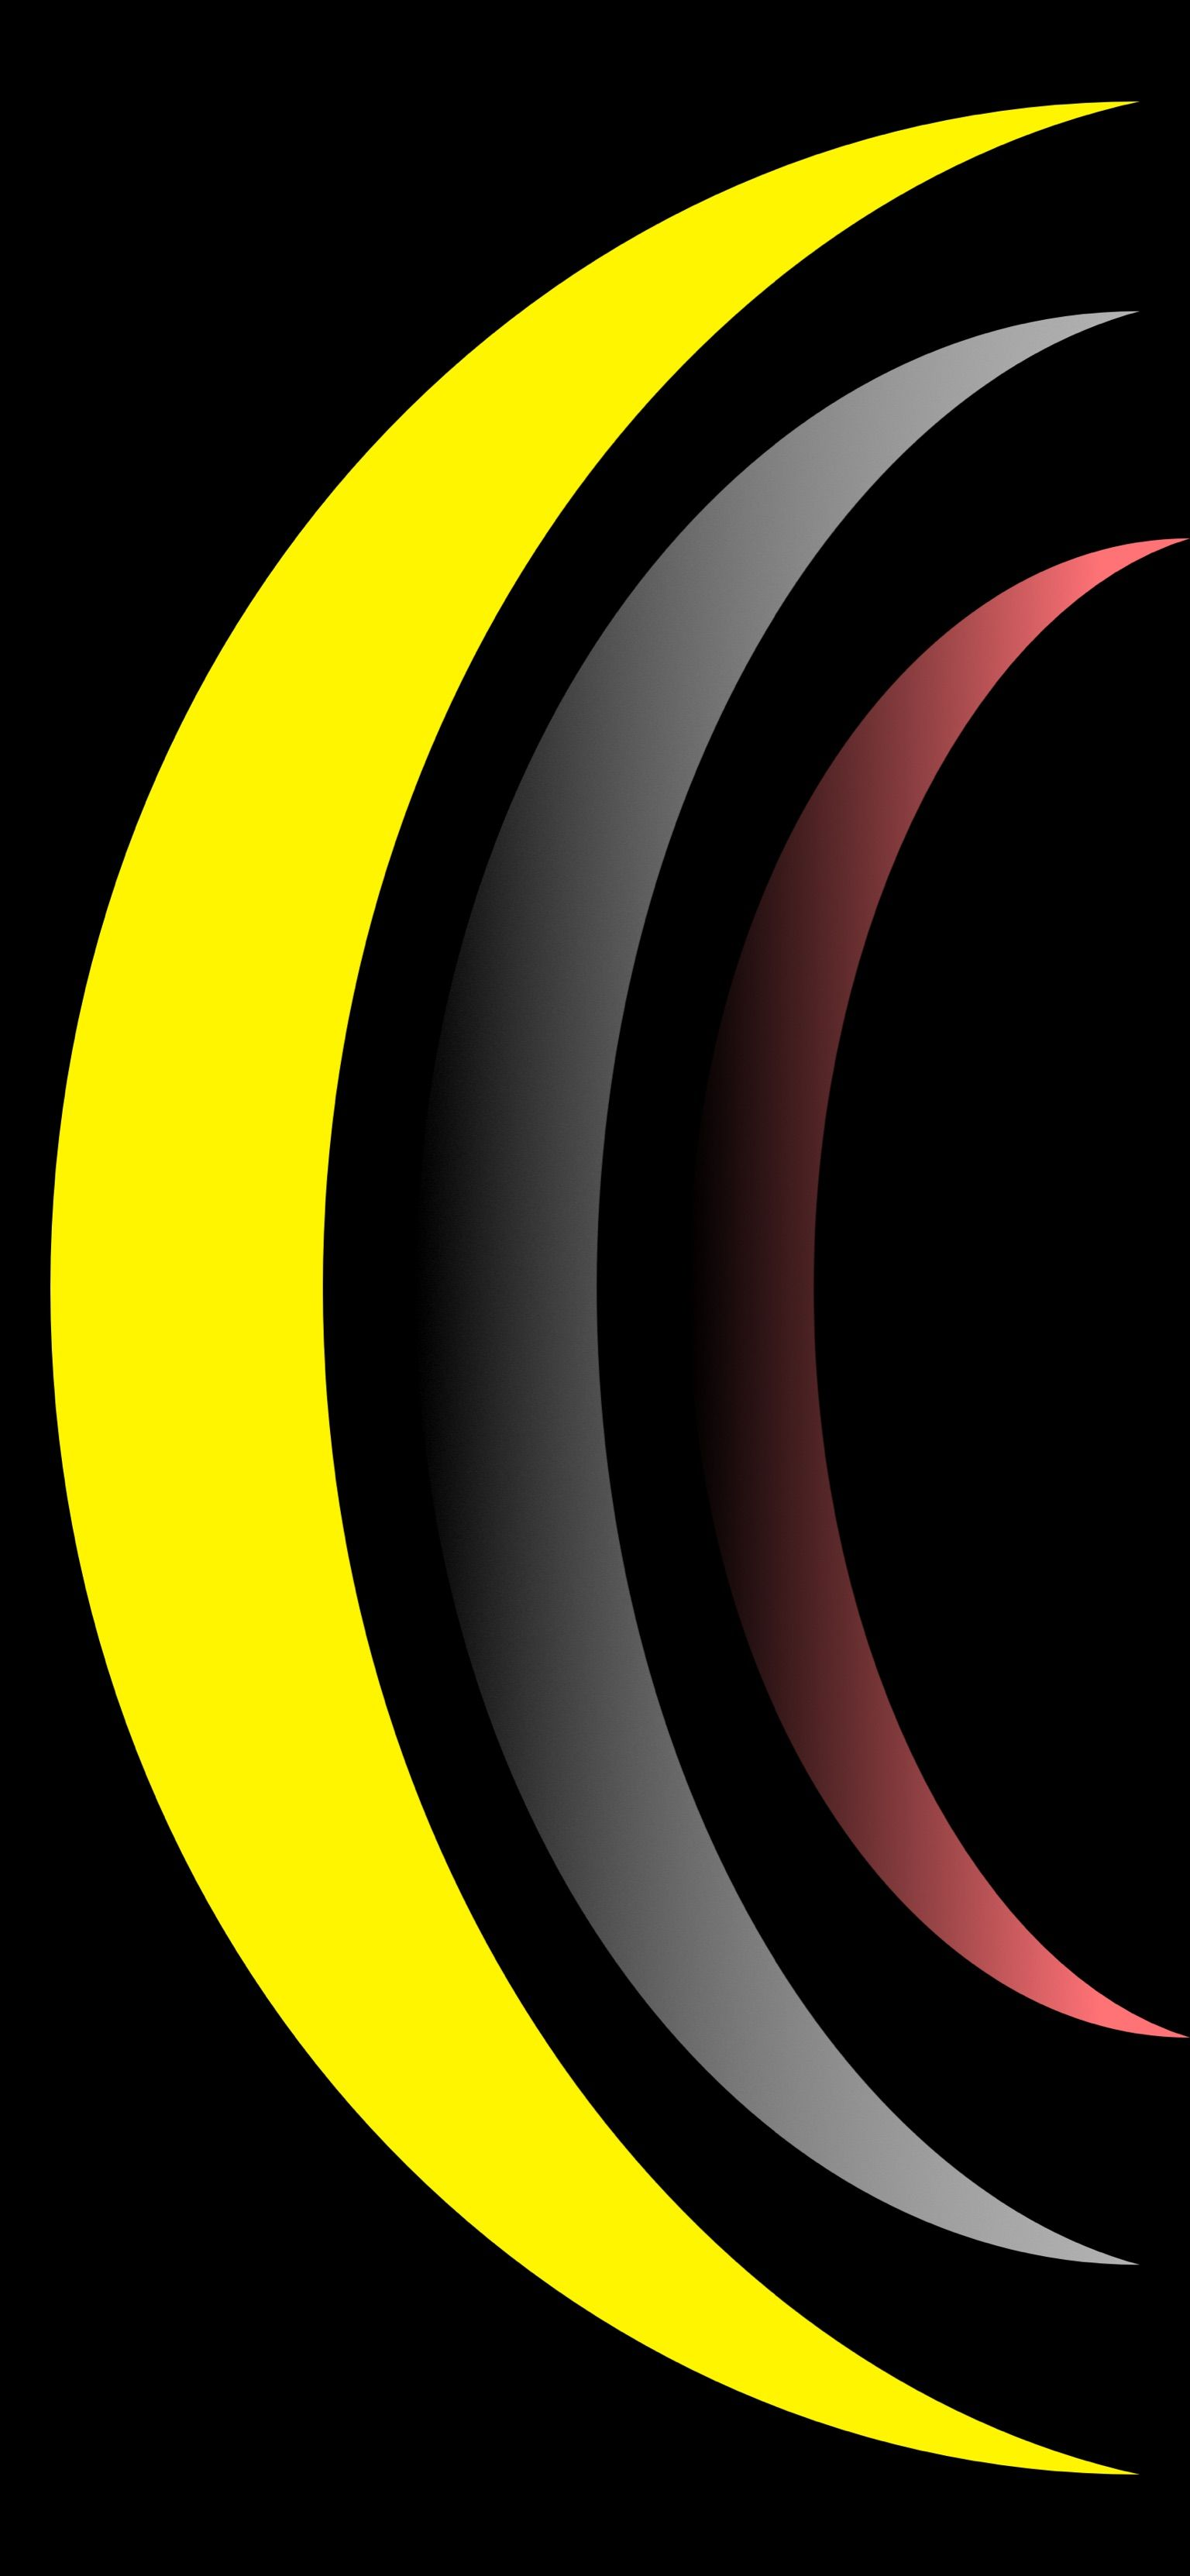 Download New Black Wallpaper Iphone Backgrounds Awesome for iPhone XR Today